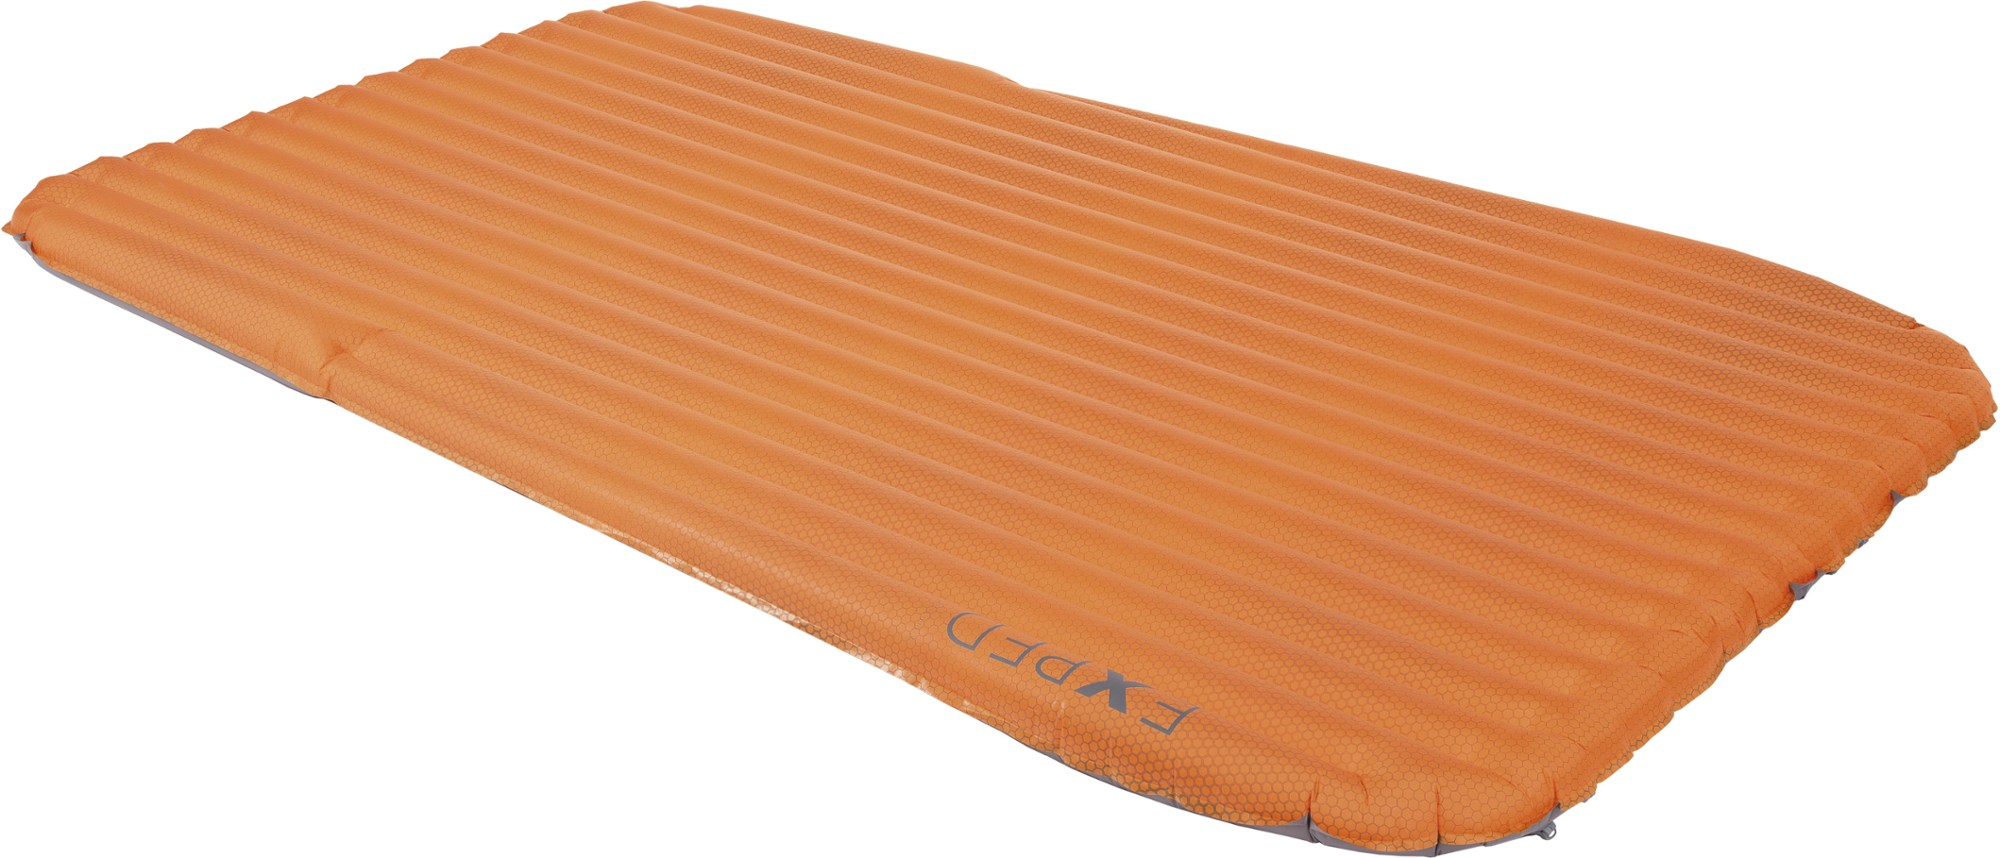 Exped SynMat HL Duo Sleeping Pad